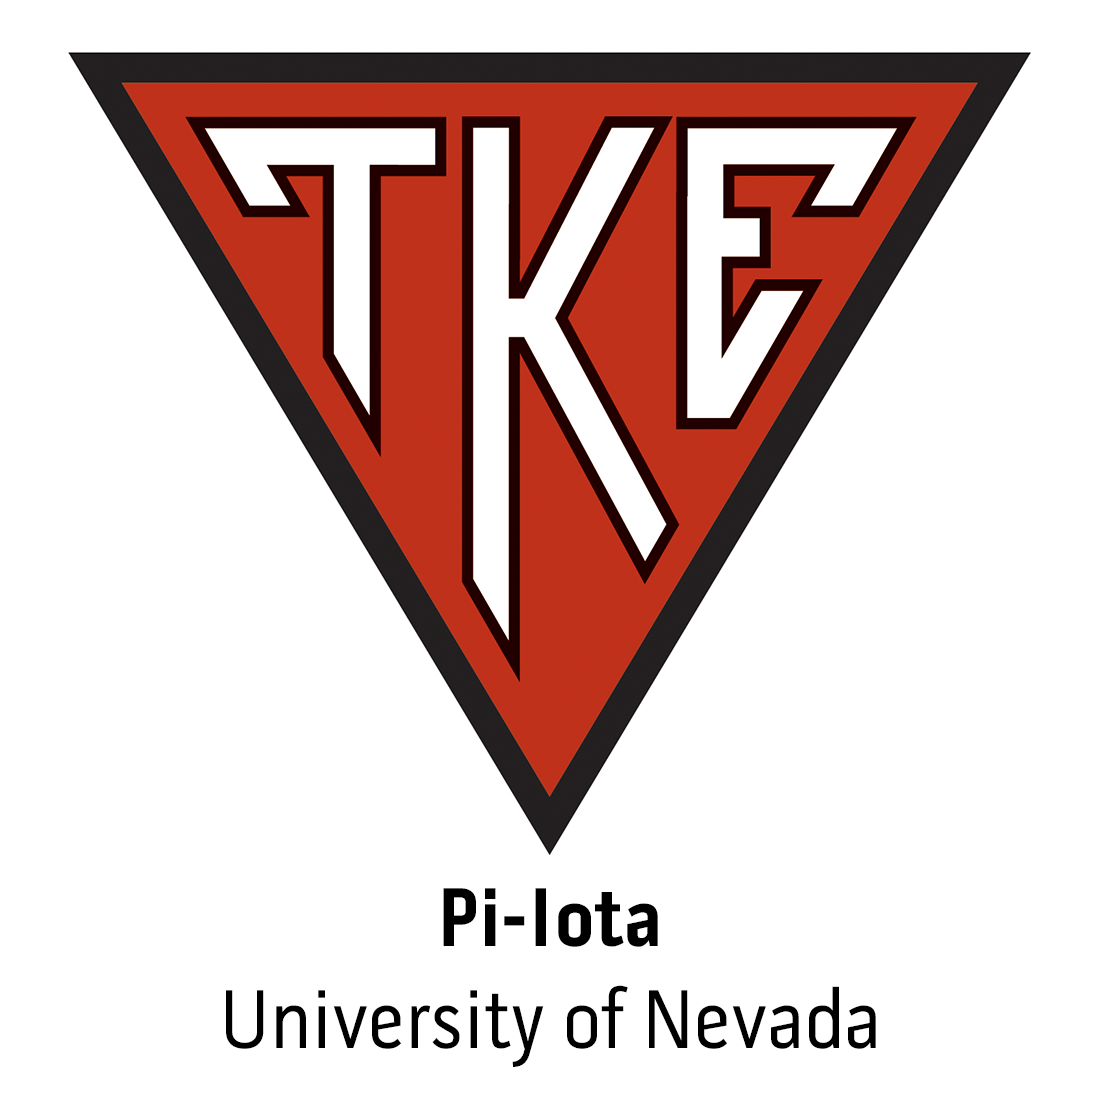 Pi-Iota Chapter at University of Nevada, Reno